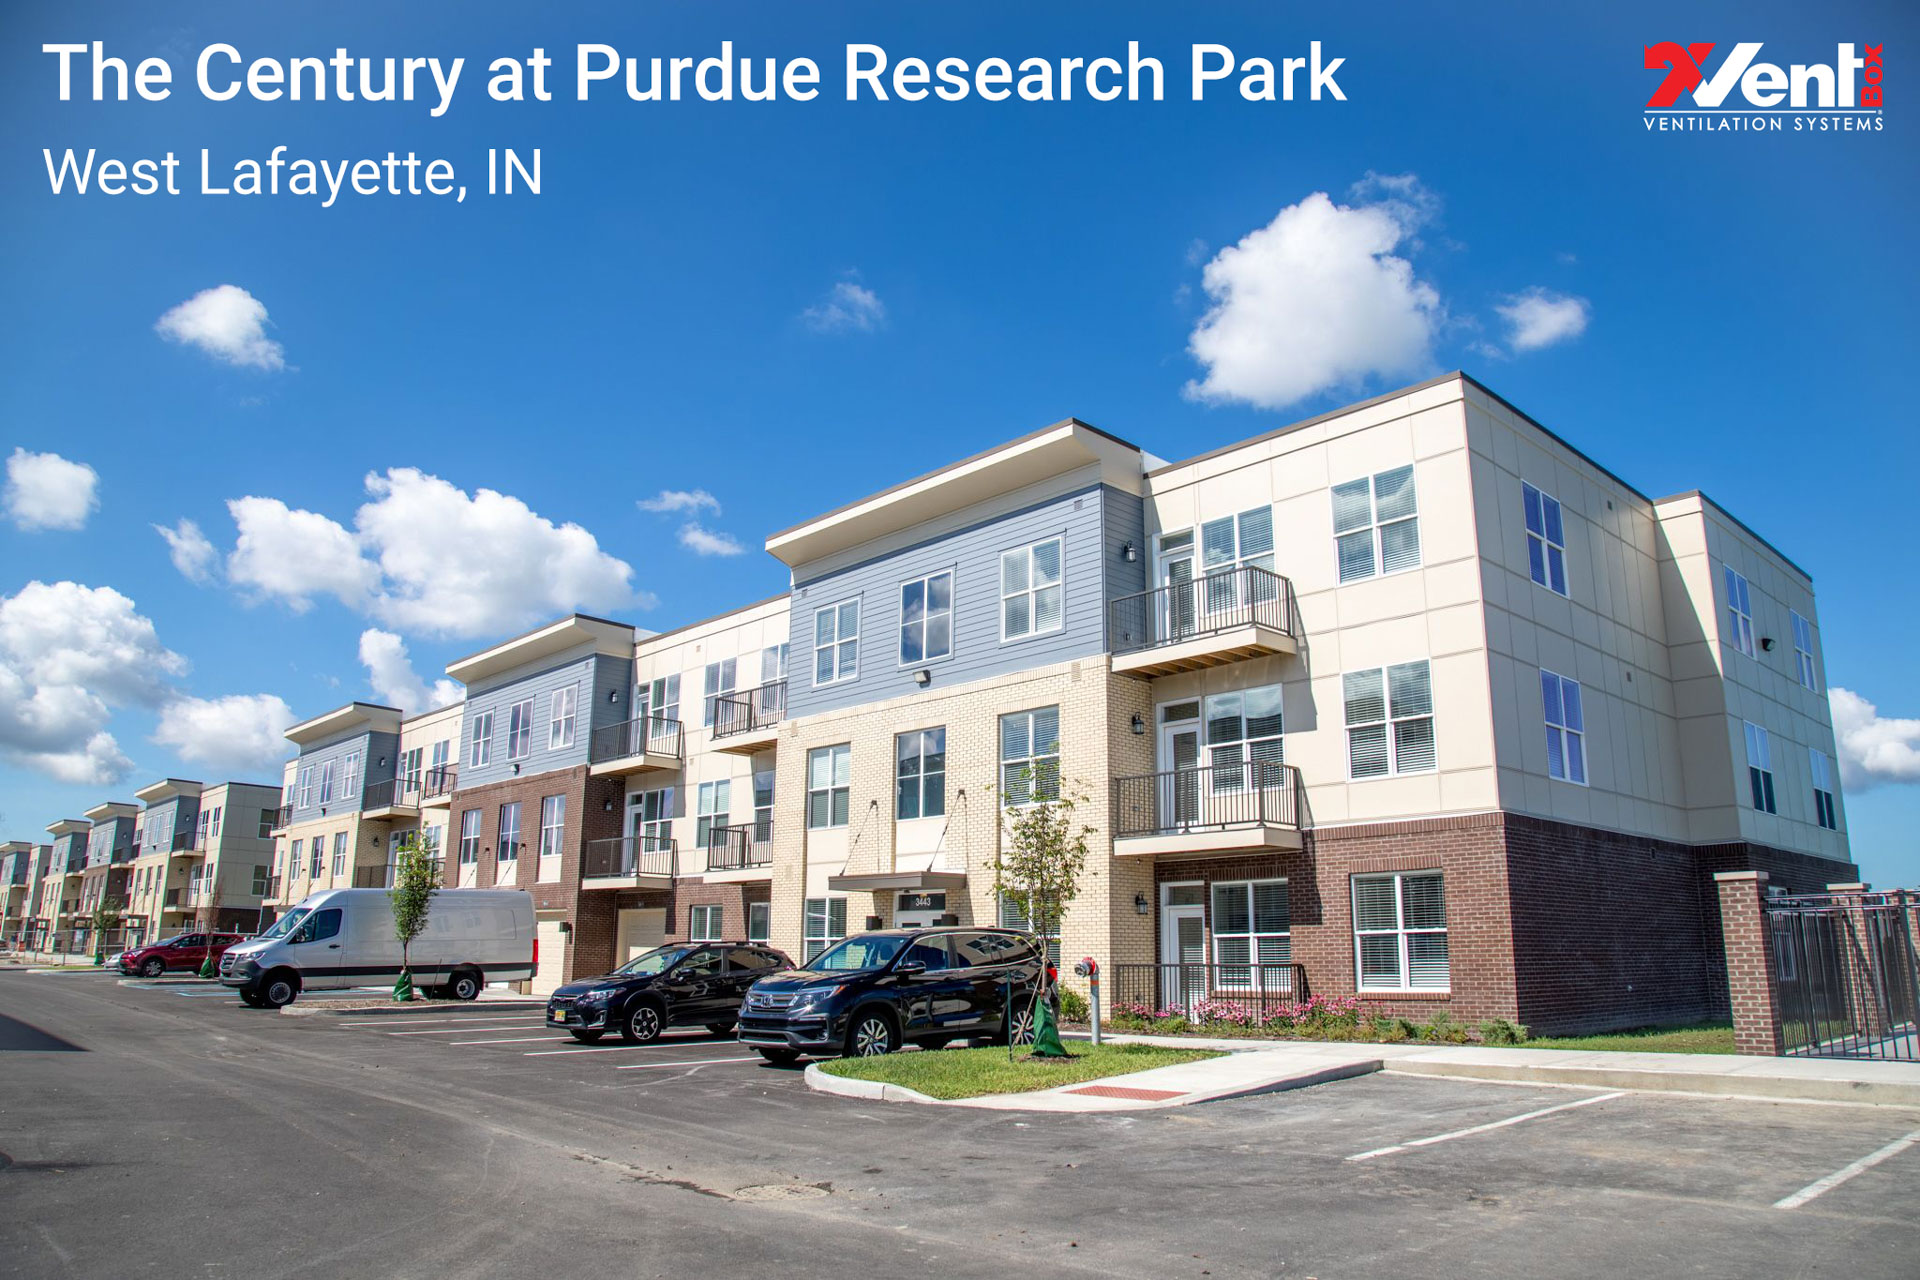 The Century at Purdue Research Park